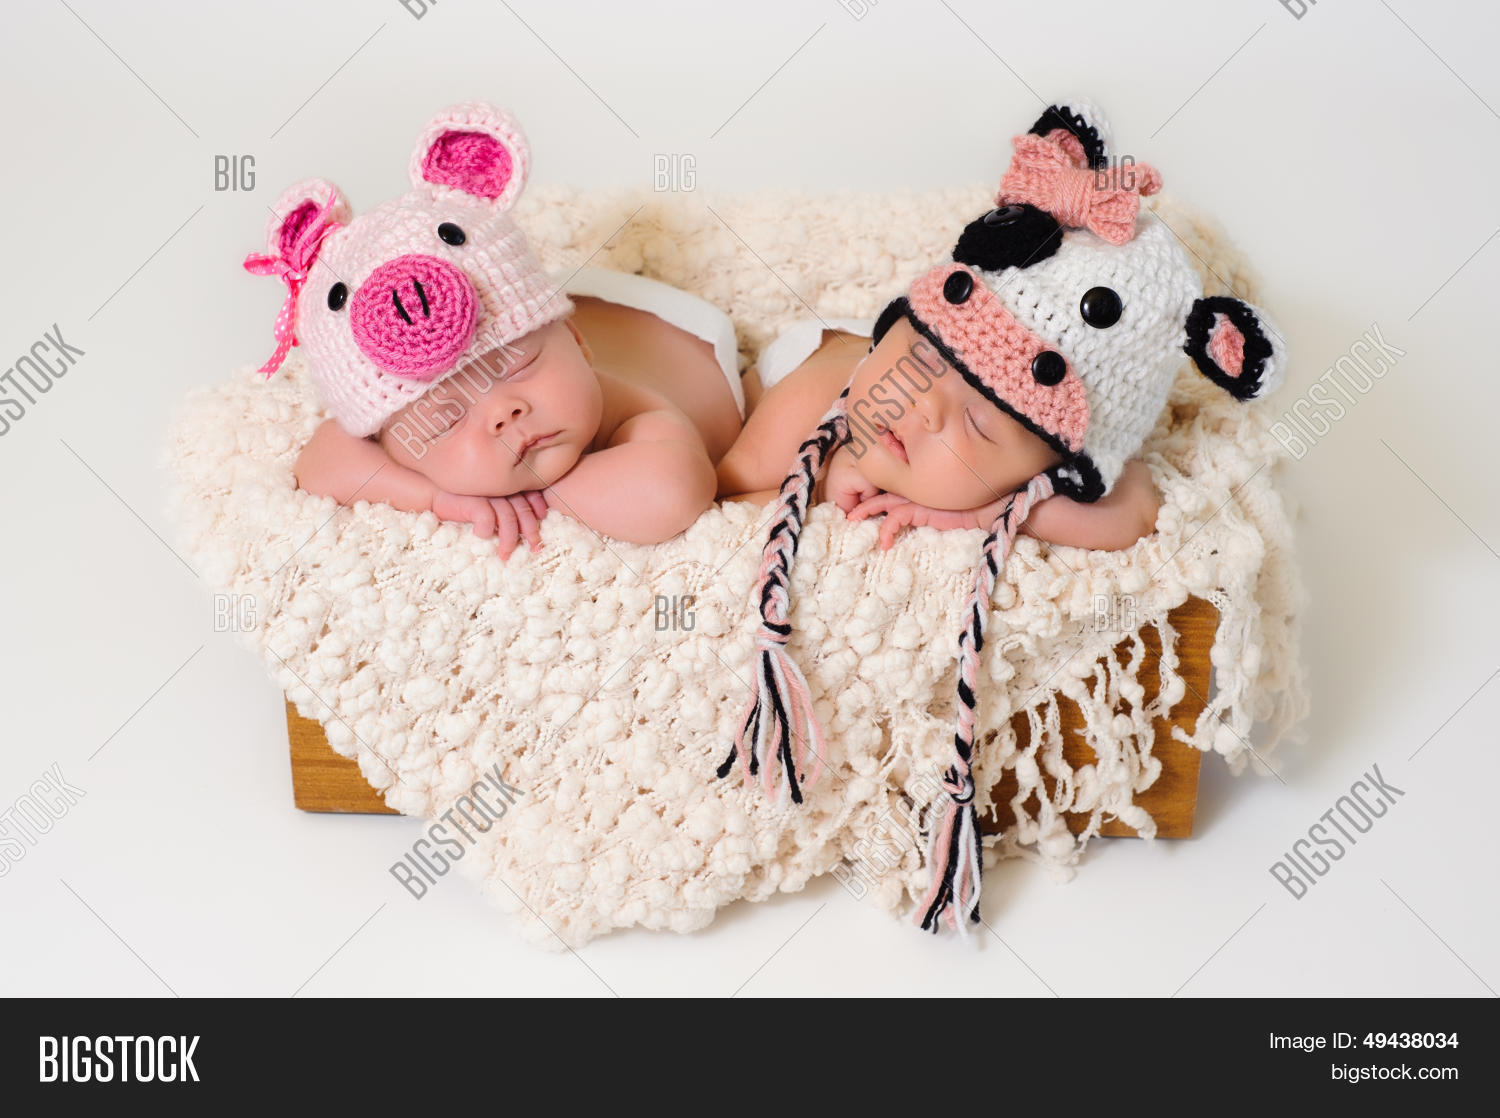 2,adorable,babies,birth,caucasian,color,costume,cow,crochet,crocheted,cute,daughters,down�,female,fraternal,front,girls,hats,human,image,infants,innocence,innocent,lay,lie,lying,multiple,new,newborn,people,pig,portrait,pure,purity,relax,relaxing,siblings,sisters,sleep,sleeping,sleeping baby,tir,twins,two